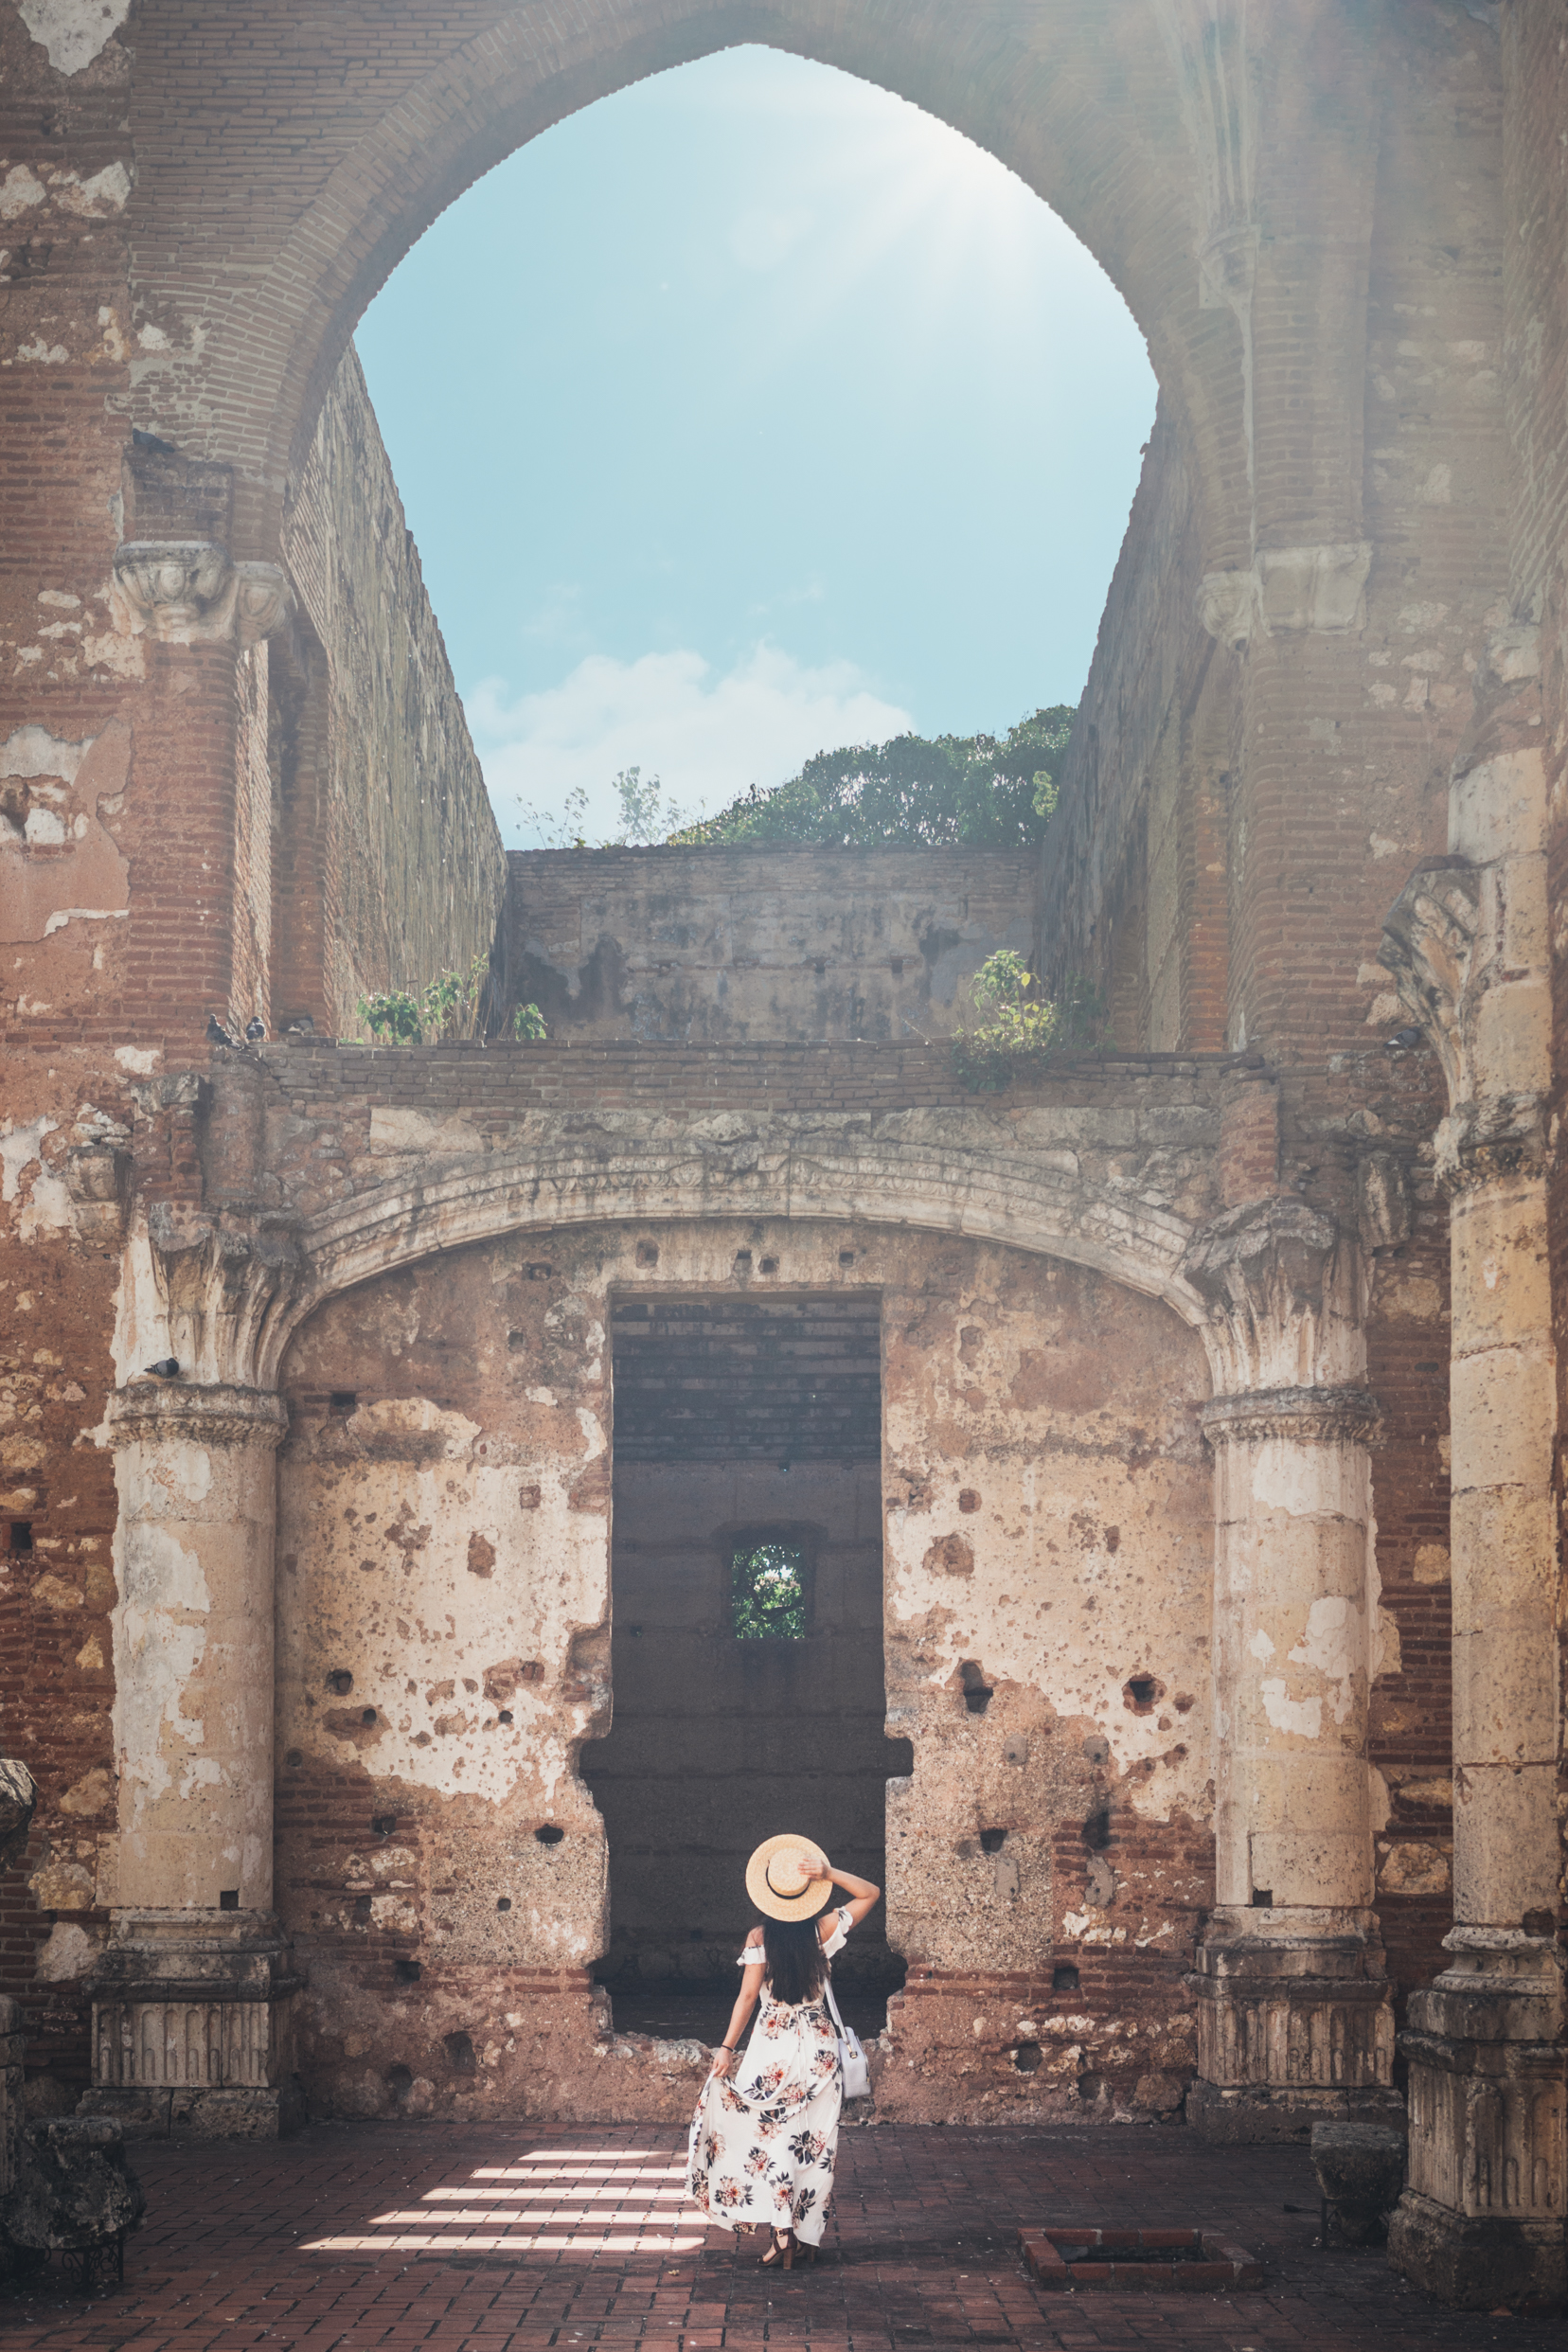 First monastery in America The New World- Santo Domingo, Dominican Republic historical landmark